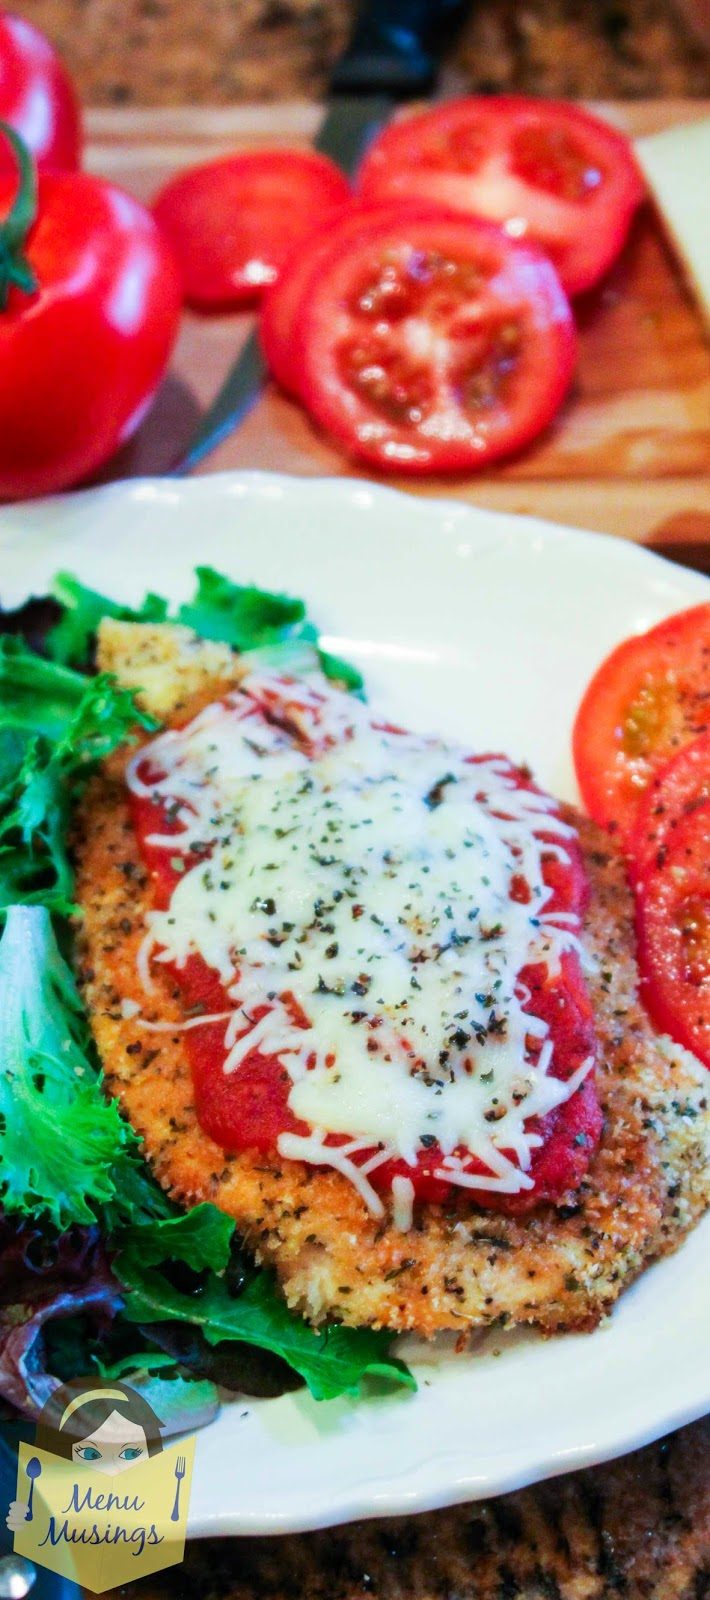 Baked Chicken Parmesan for Pinterest @ menumusings.com